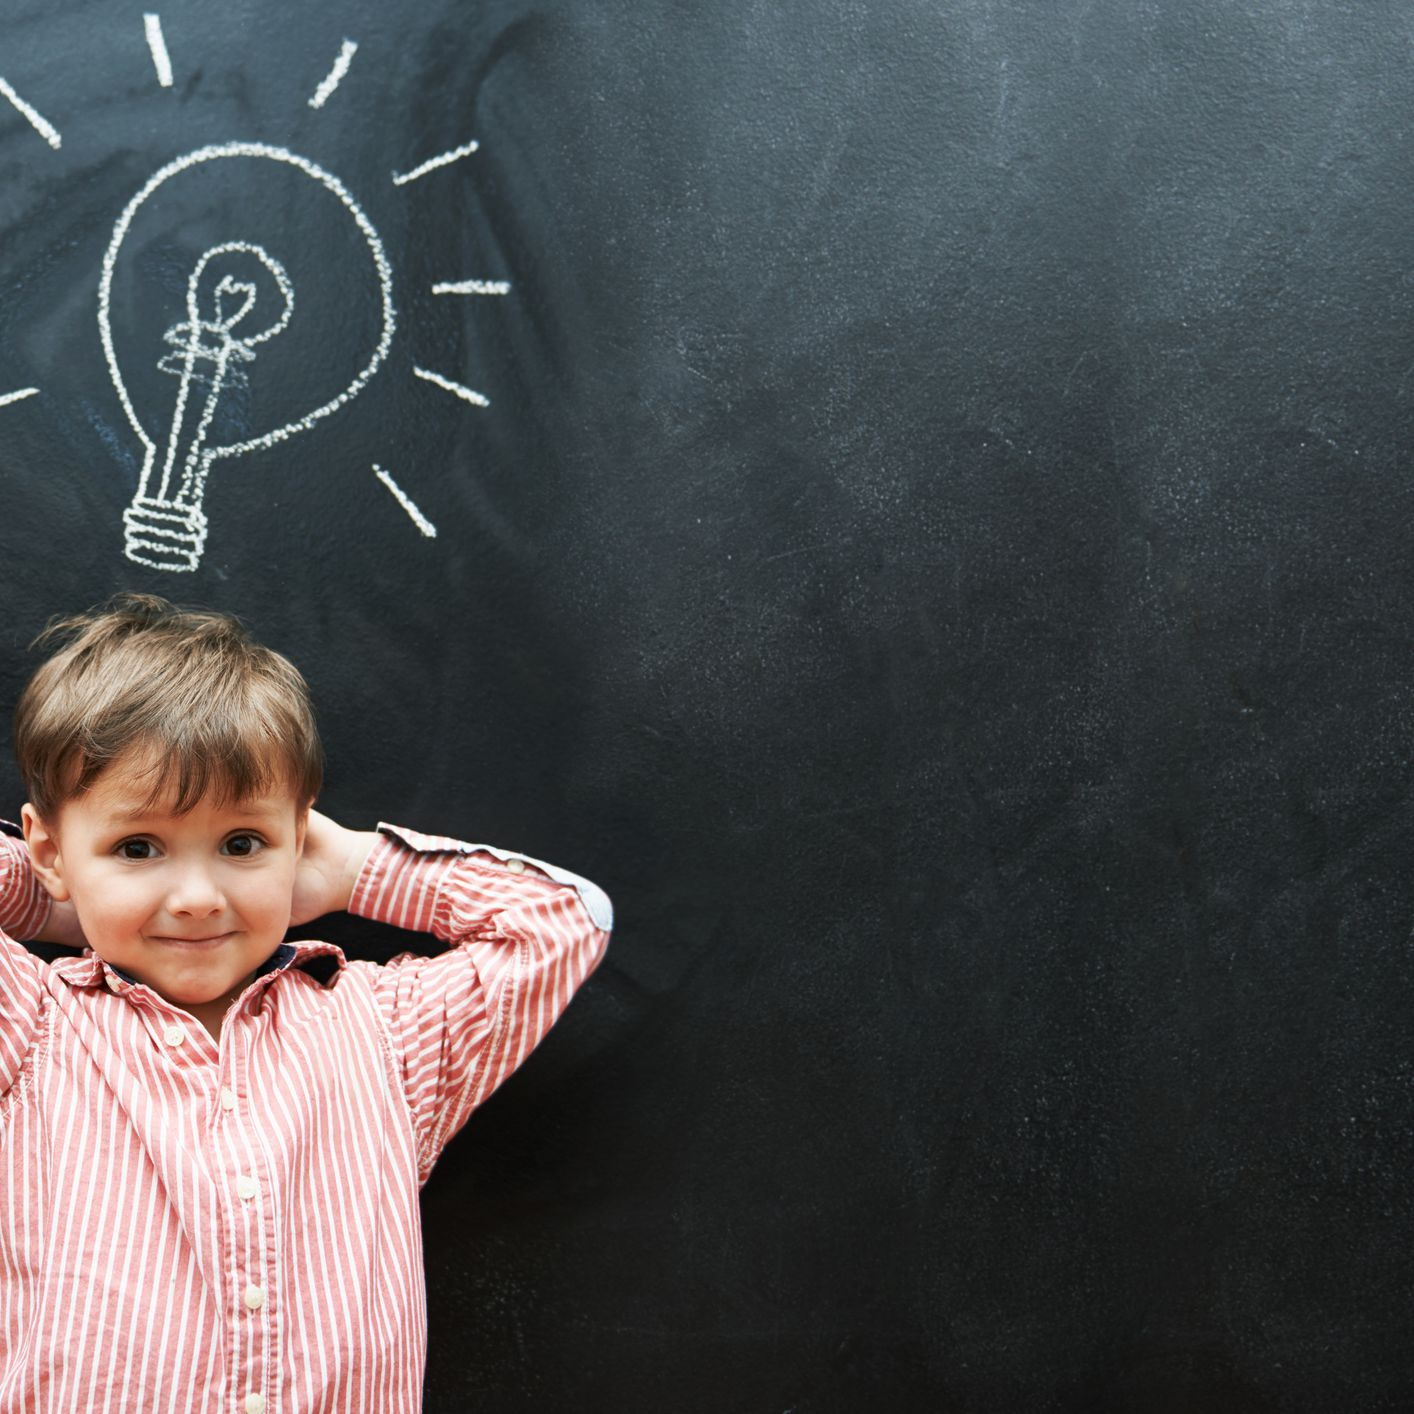 IQ Scores Can Change the Way Your Child Is Educated